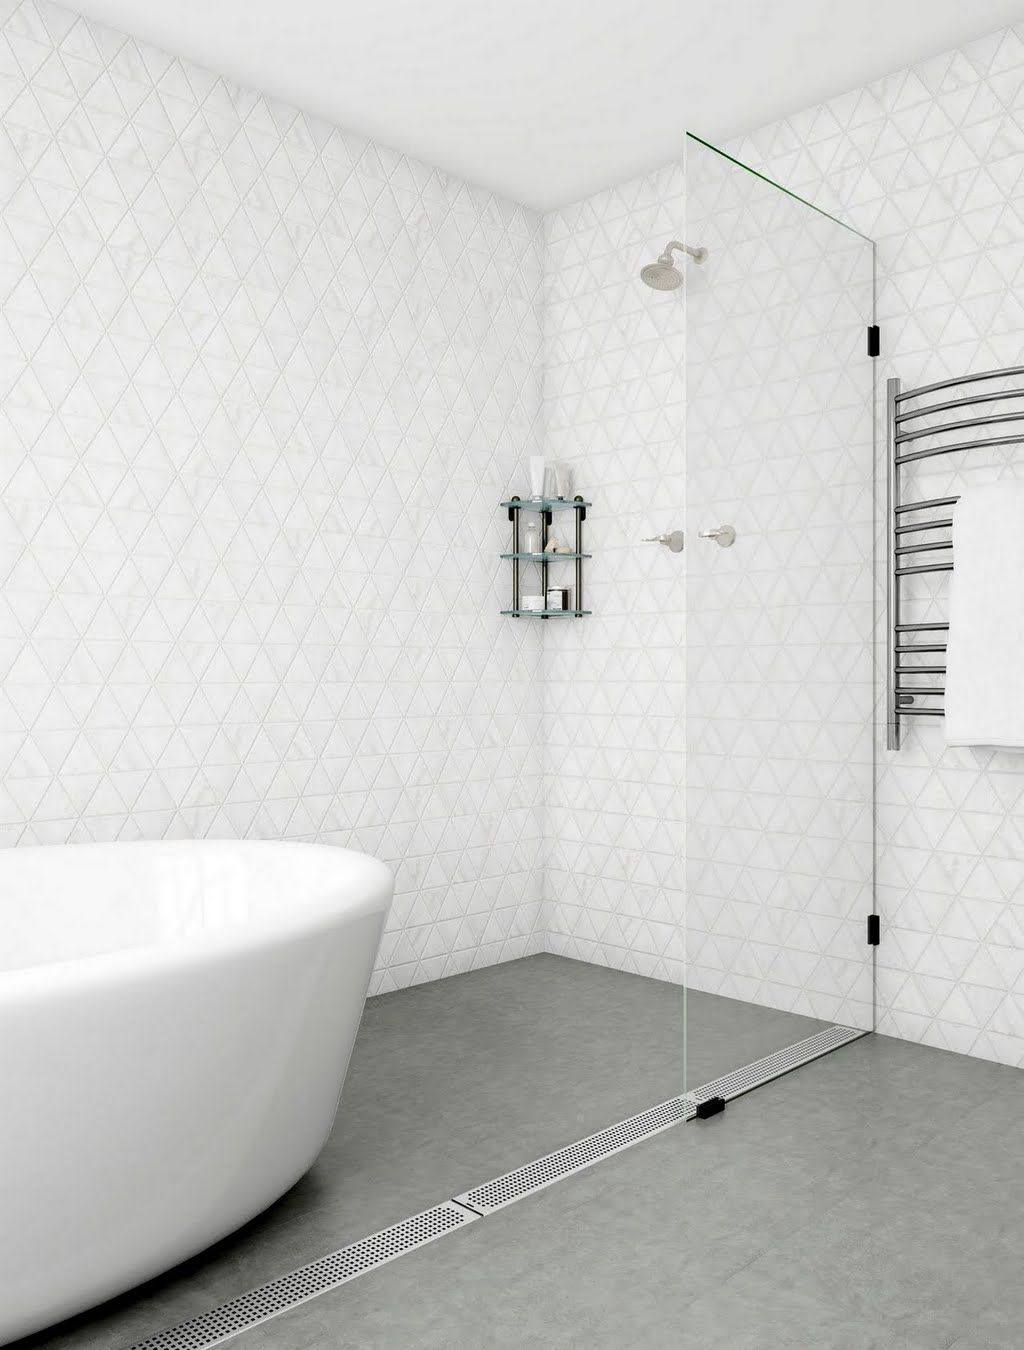 Shop our Bathroom Department to customize your White and Gray Minimalist Wet Room today at The Home Depot. #wetrooms